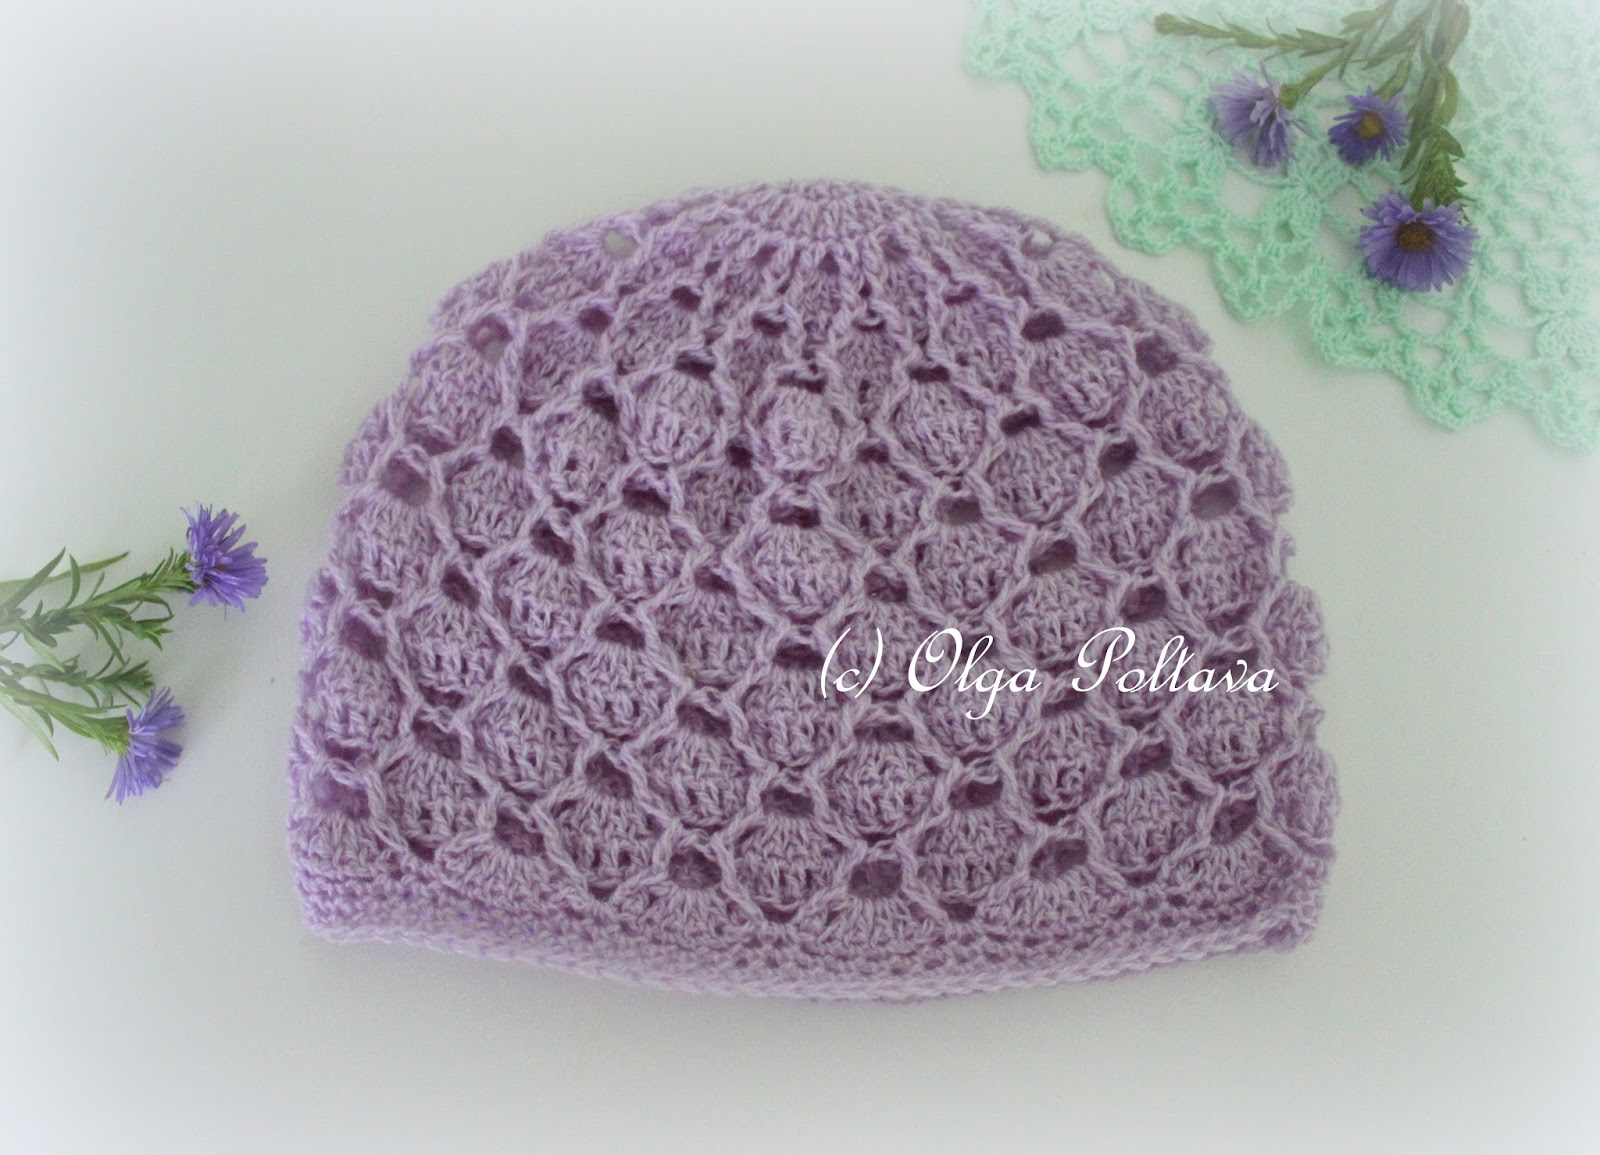 ... Crochet: Delicate Lace Crochet Baby Hat, Free Pattern from Pinterest